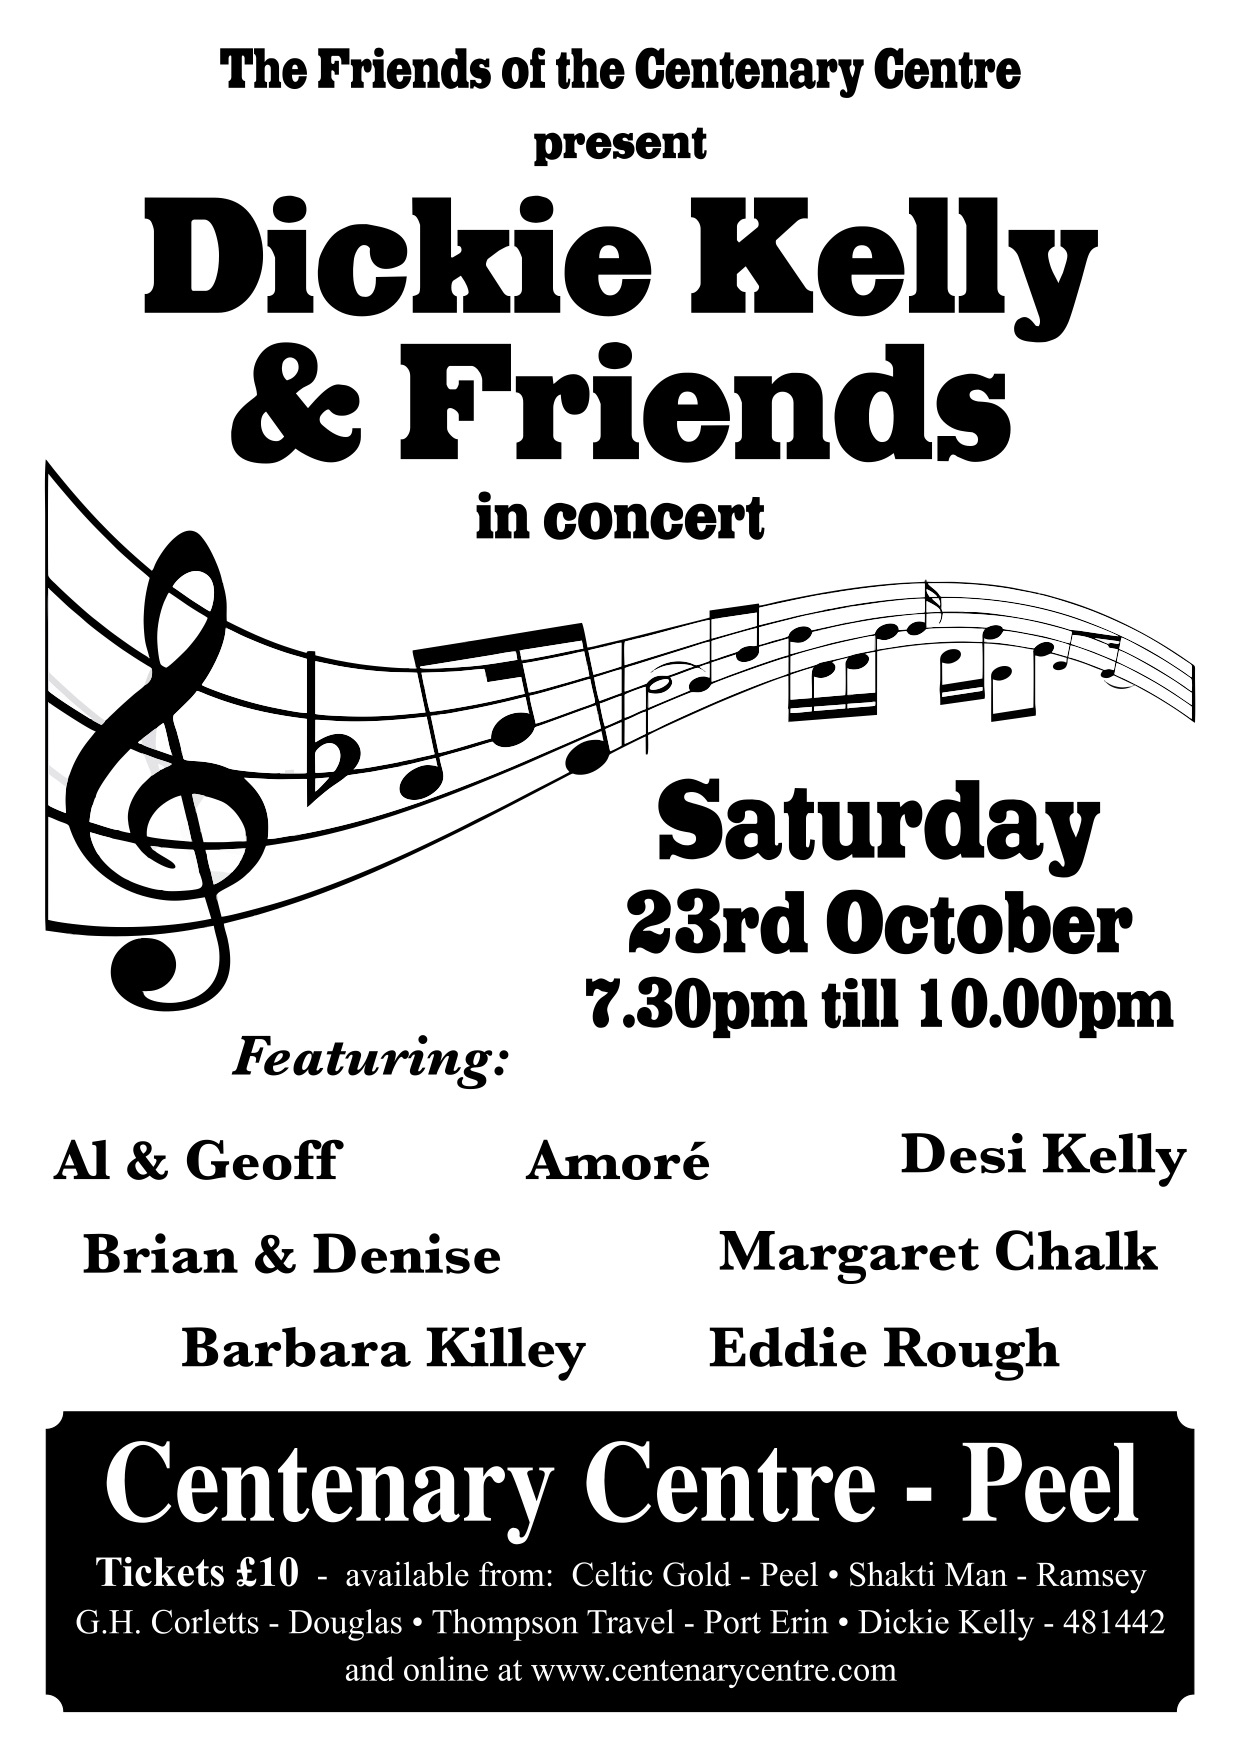 Dickie Kelly & Friends in Concert @ Centenary Centre